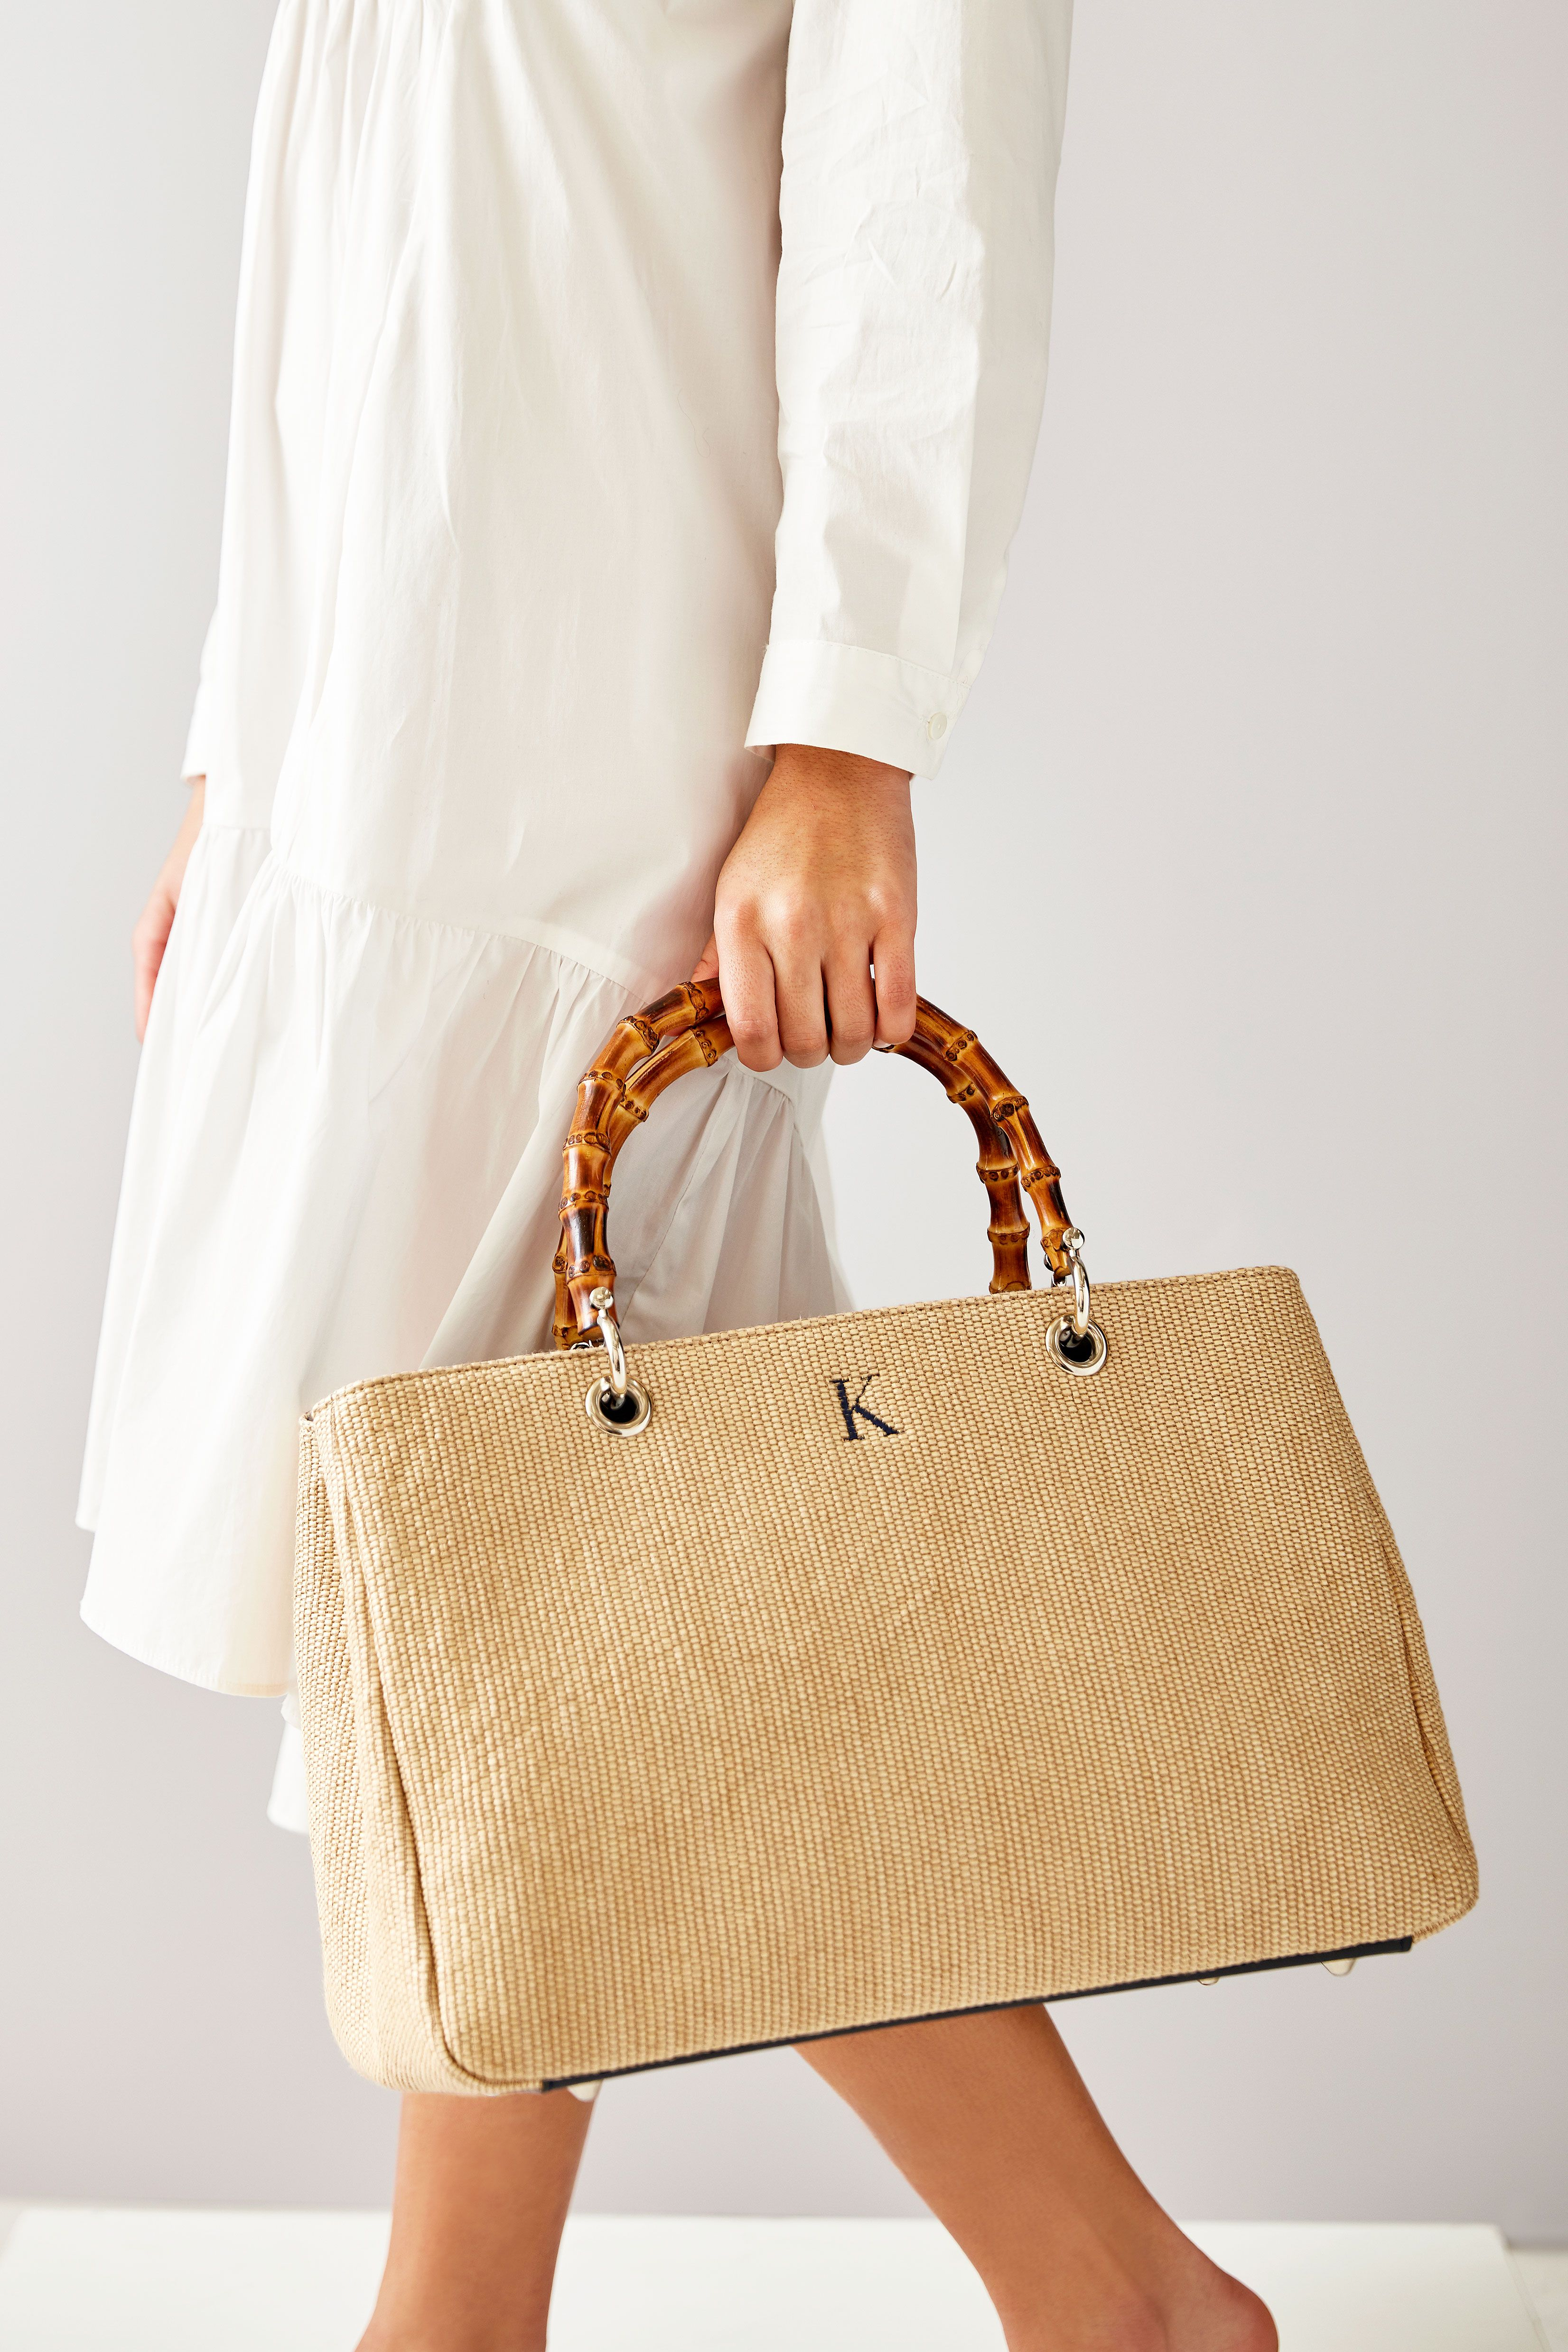 MARINA BAG Handmade grooved cotton /& Leather Shopping bag\\tote